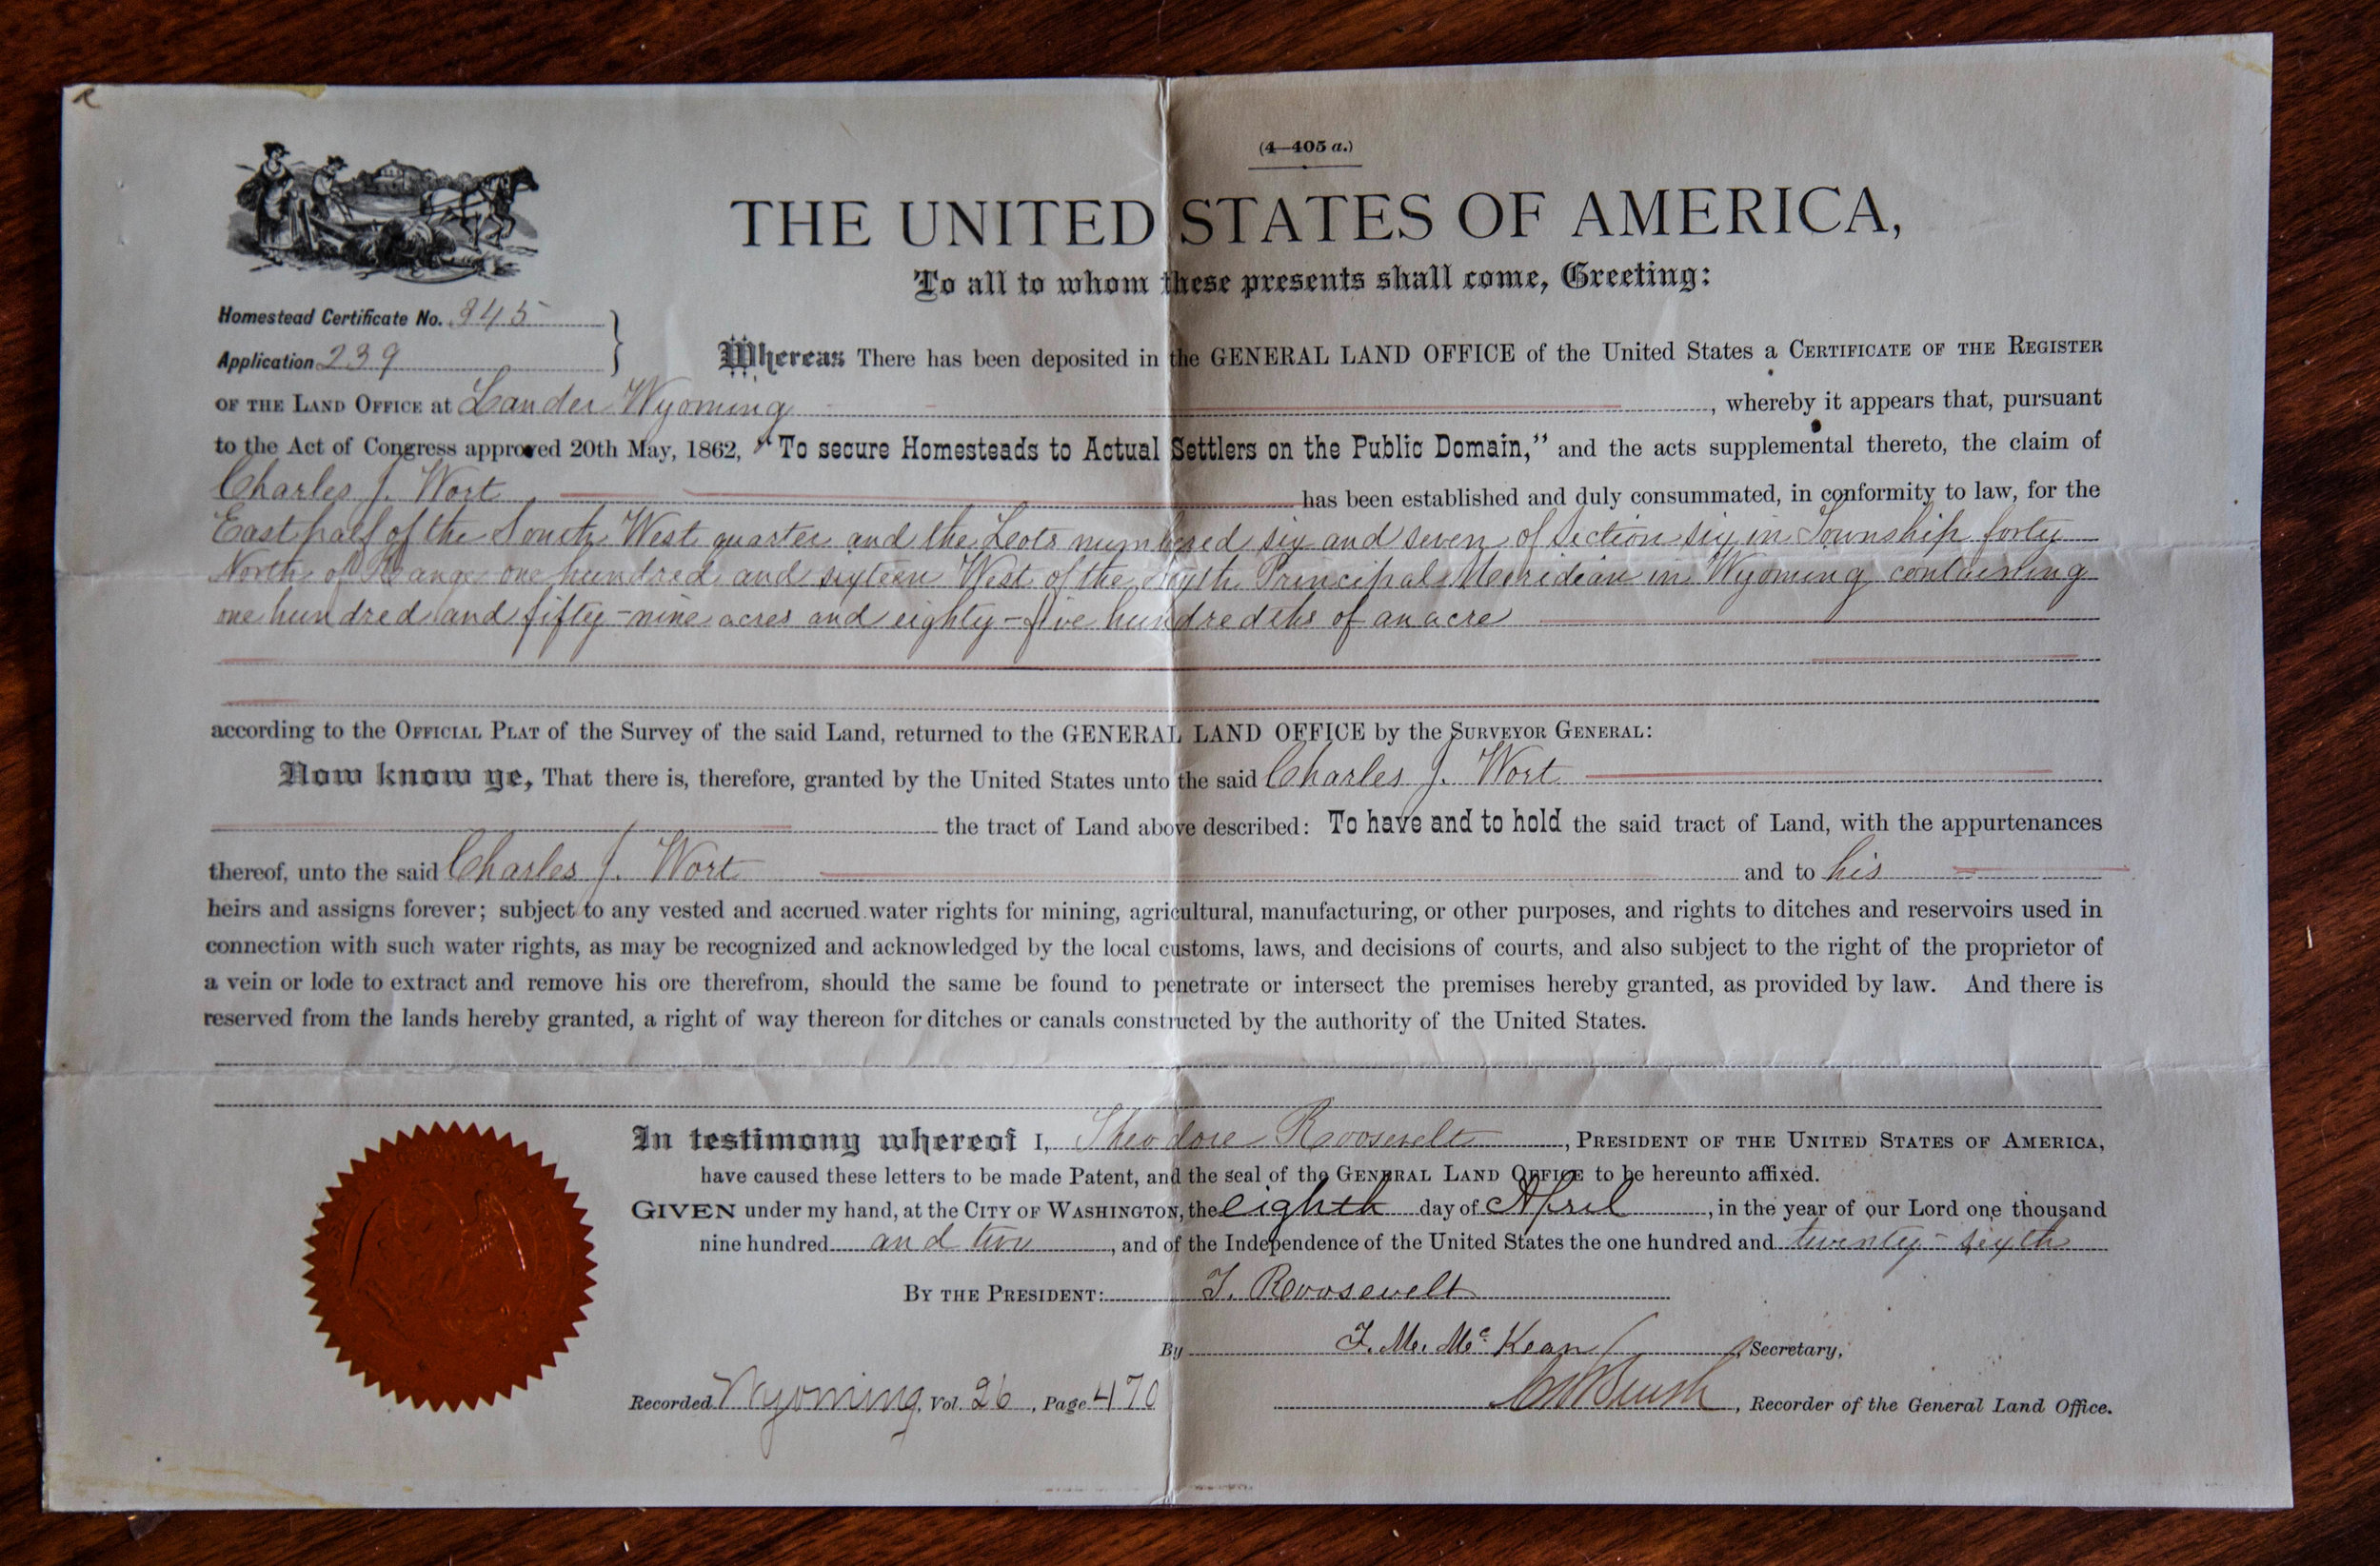 Original   Wort Homestead Deed signed by President Theodore Roosevelt on April 8, 1902.